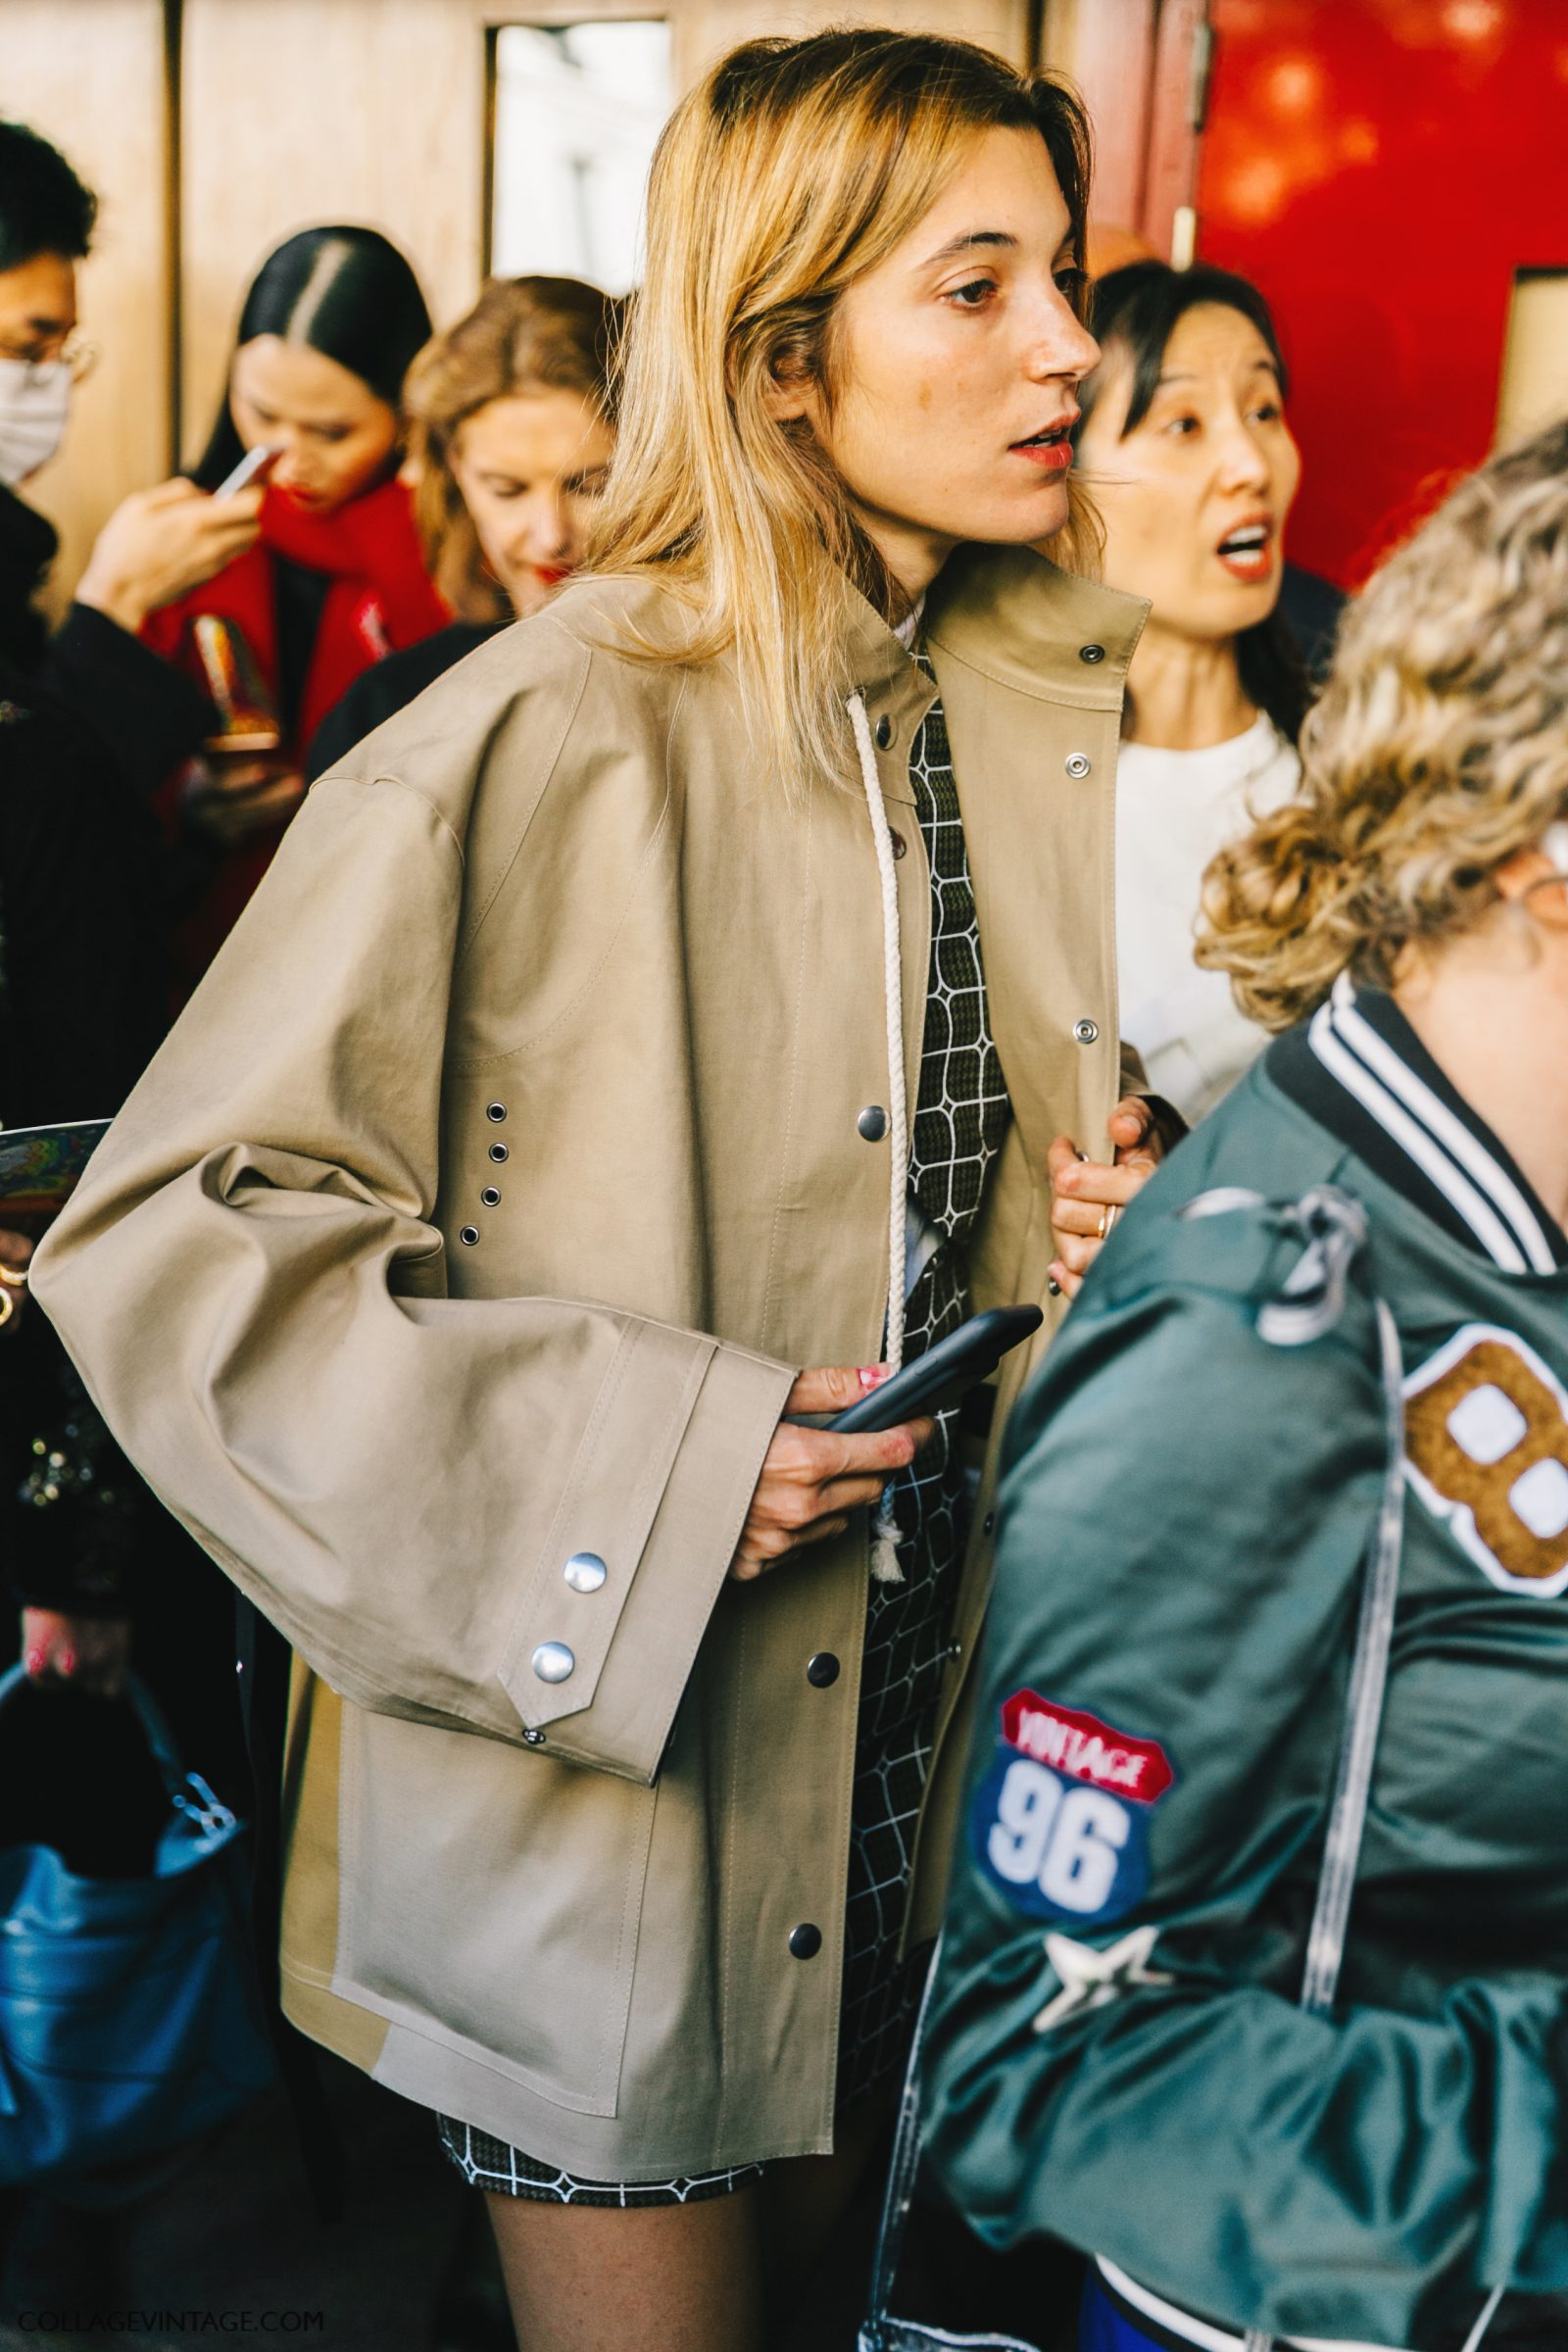 pfw-paris_fashion_week_ss17-street_style-outfits-collage_vintage-olympia_letan-hermes-stella_mccartney-sacai-174